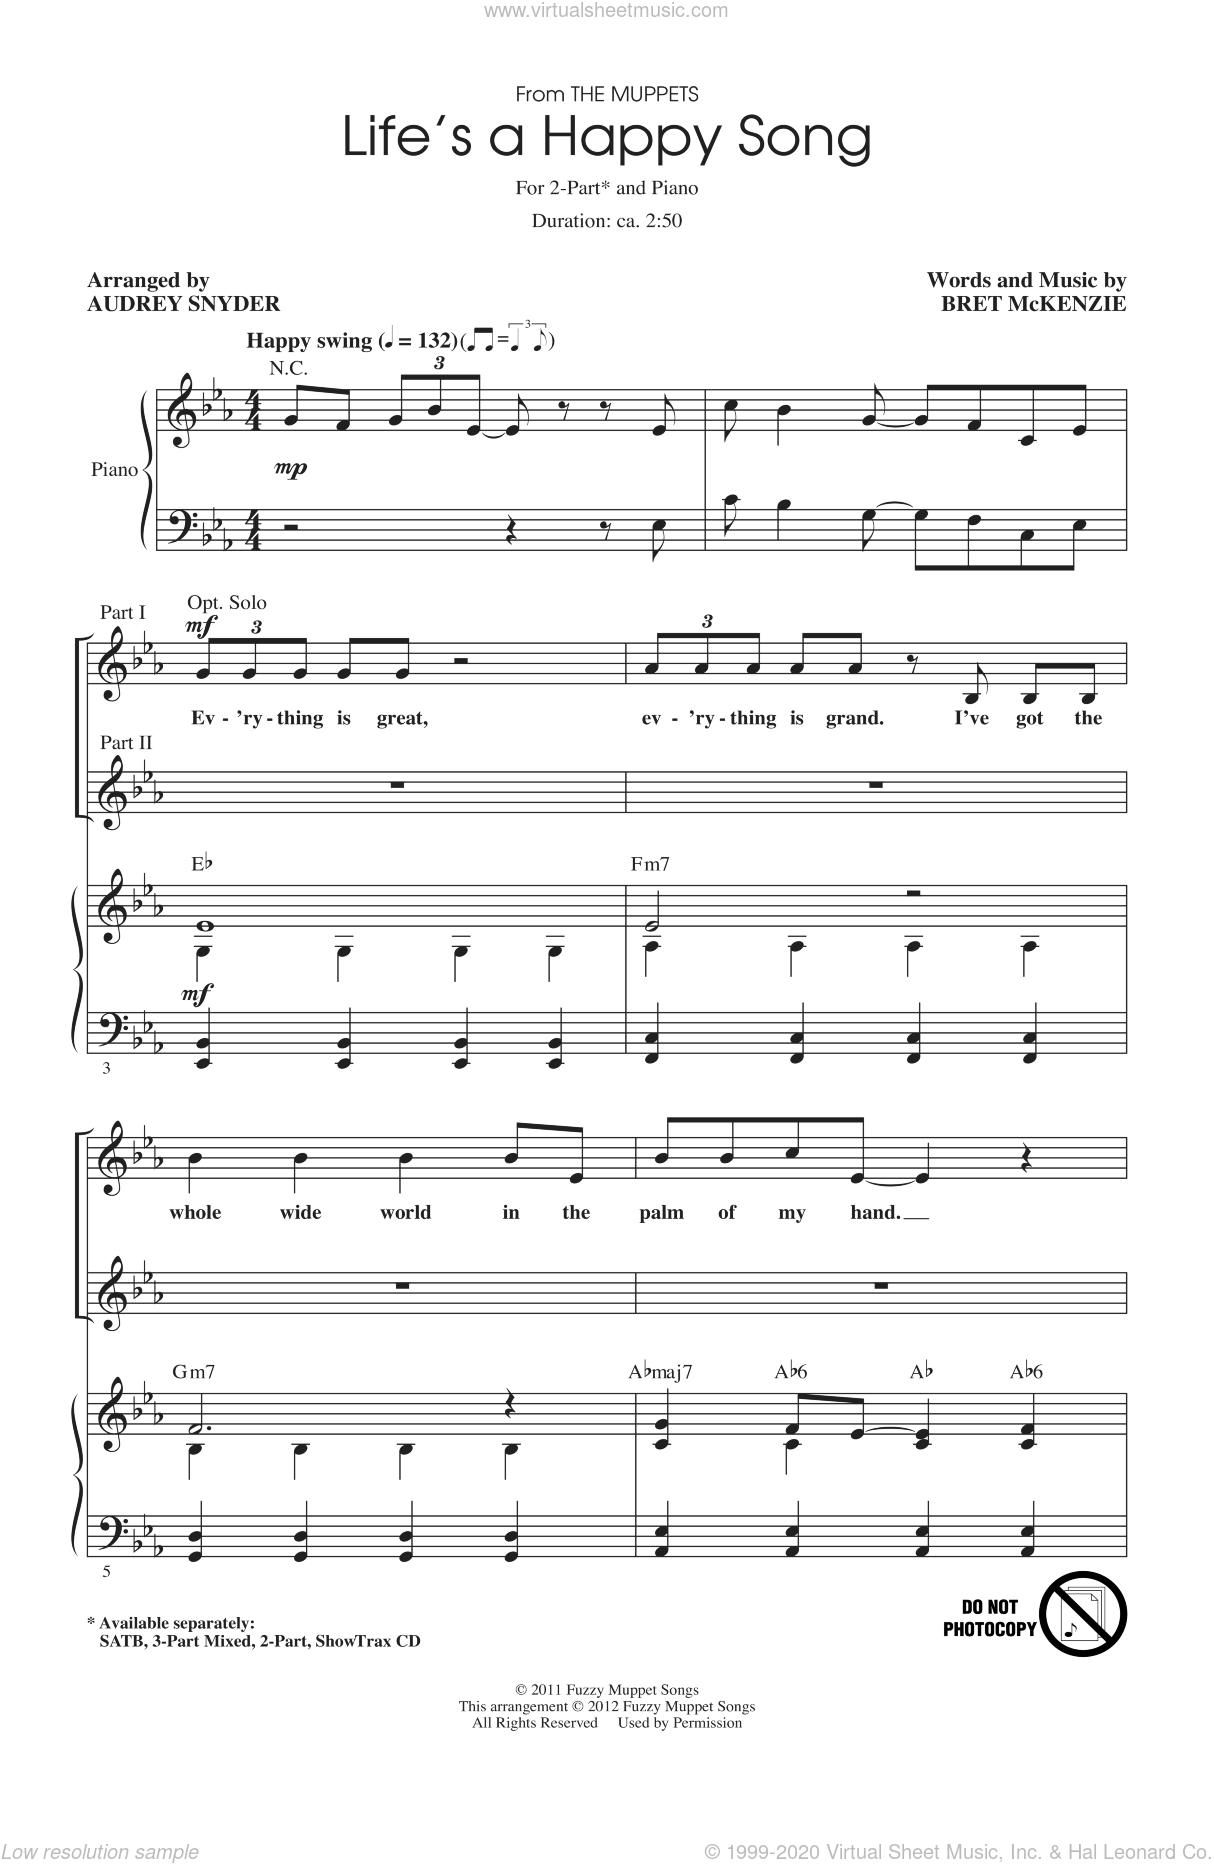 Life's A Happy Song sheet music for choir and piano (duets) by Bret McKenzie, Audrey Snyder and The Muppets. Score Image Preview.